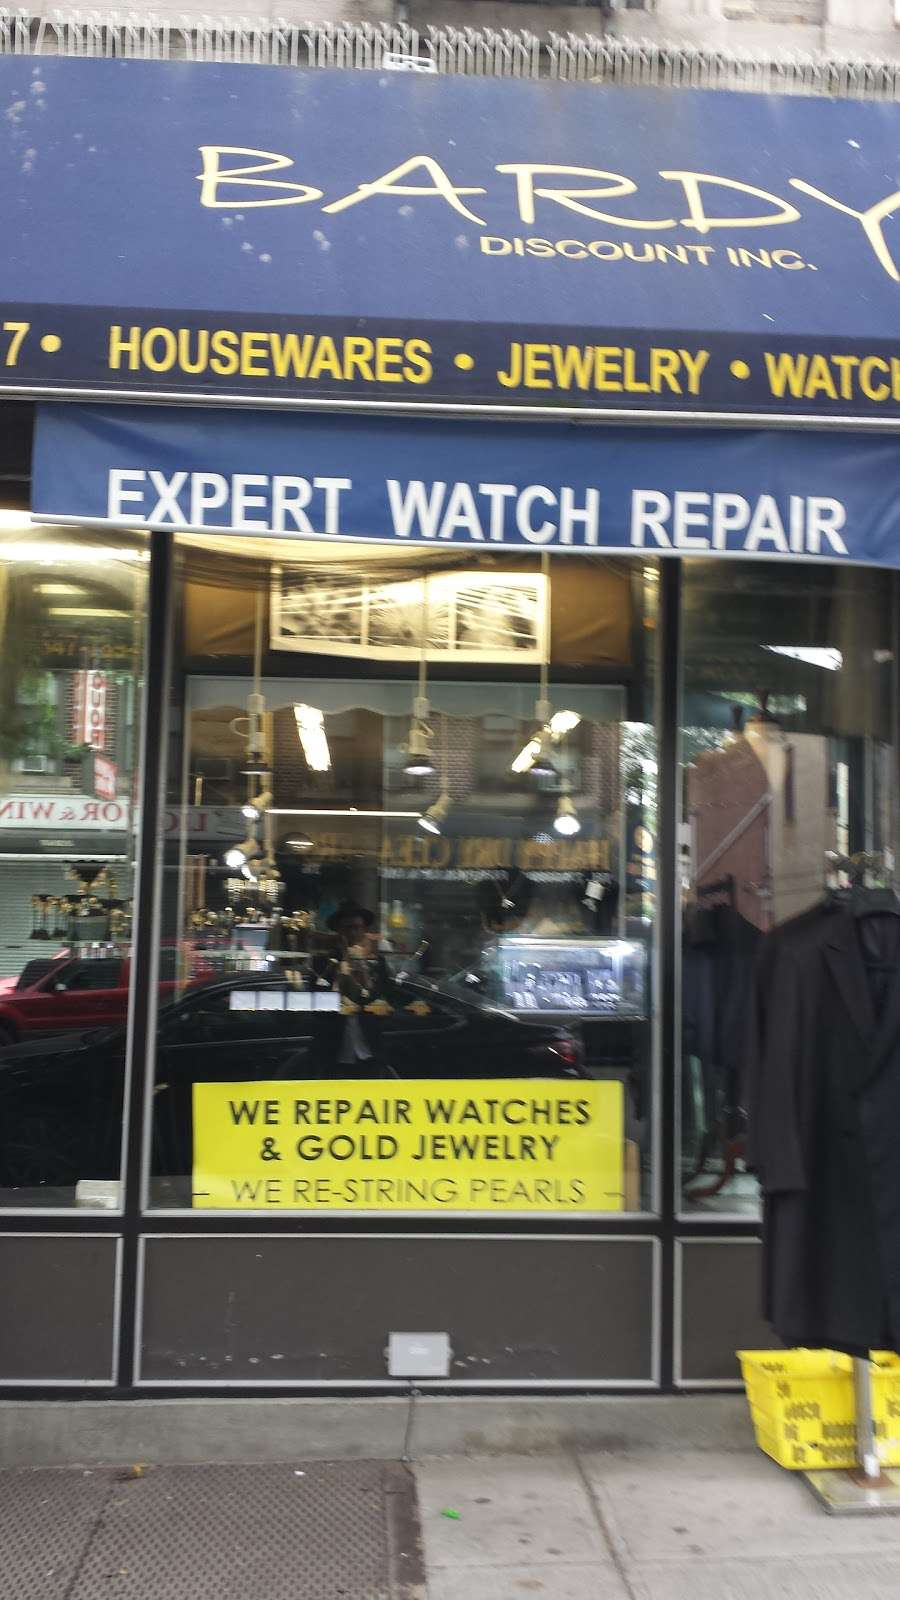 Bardys Discount Inc - jewelry store  | Photo 2 of 2 | Address: 323 Kingston Ave, Brooklyn, NY 11213, USA | Phone: (347) 789-8417